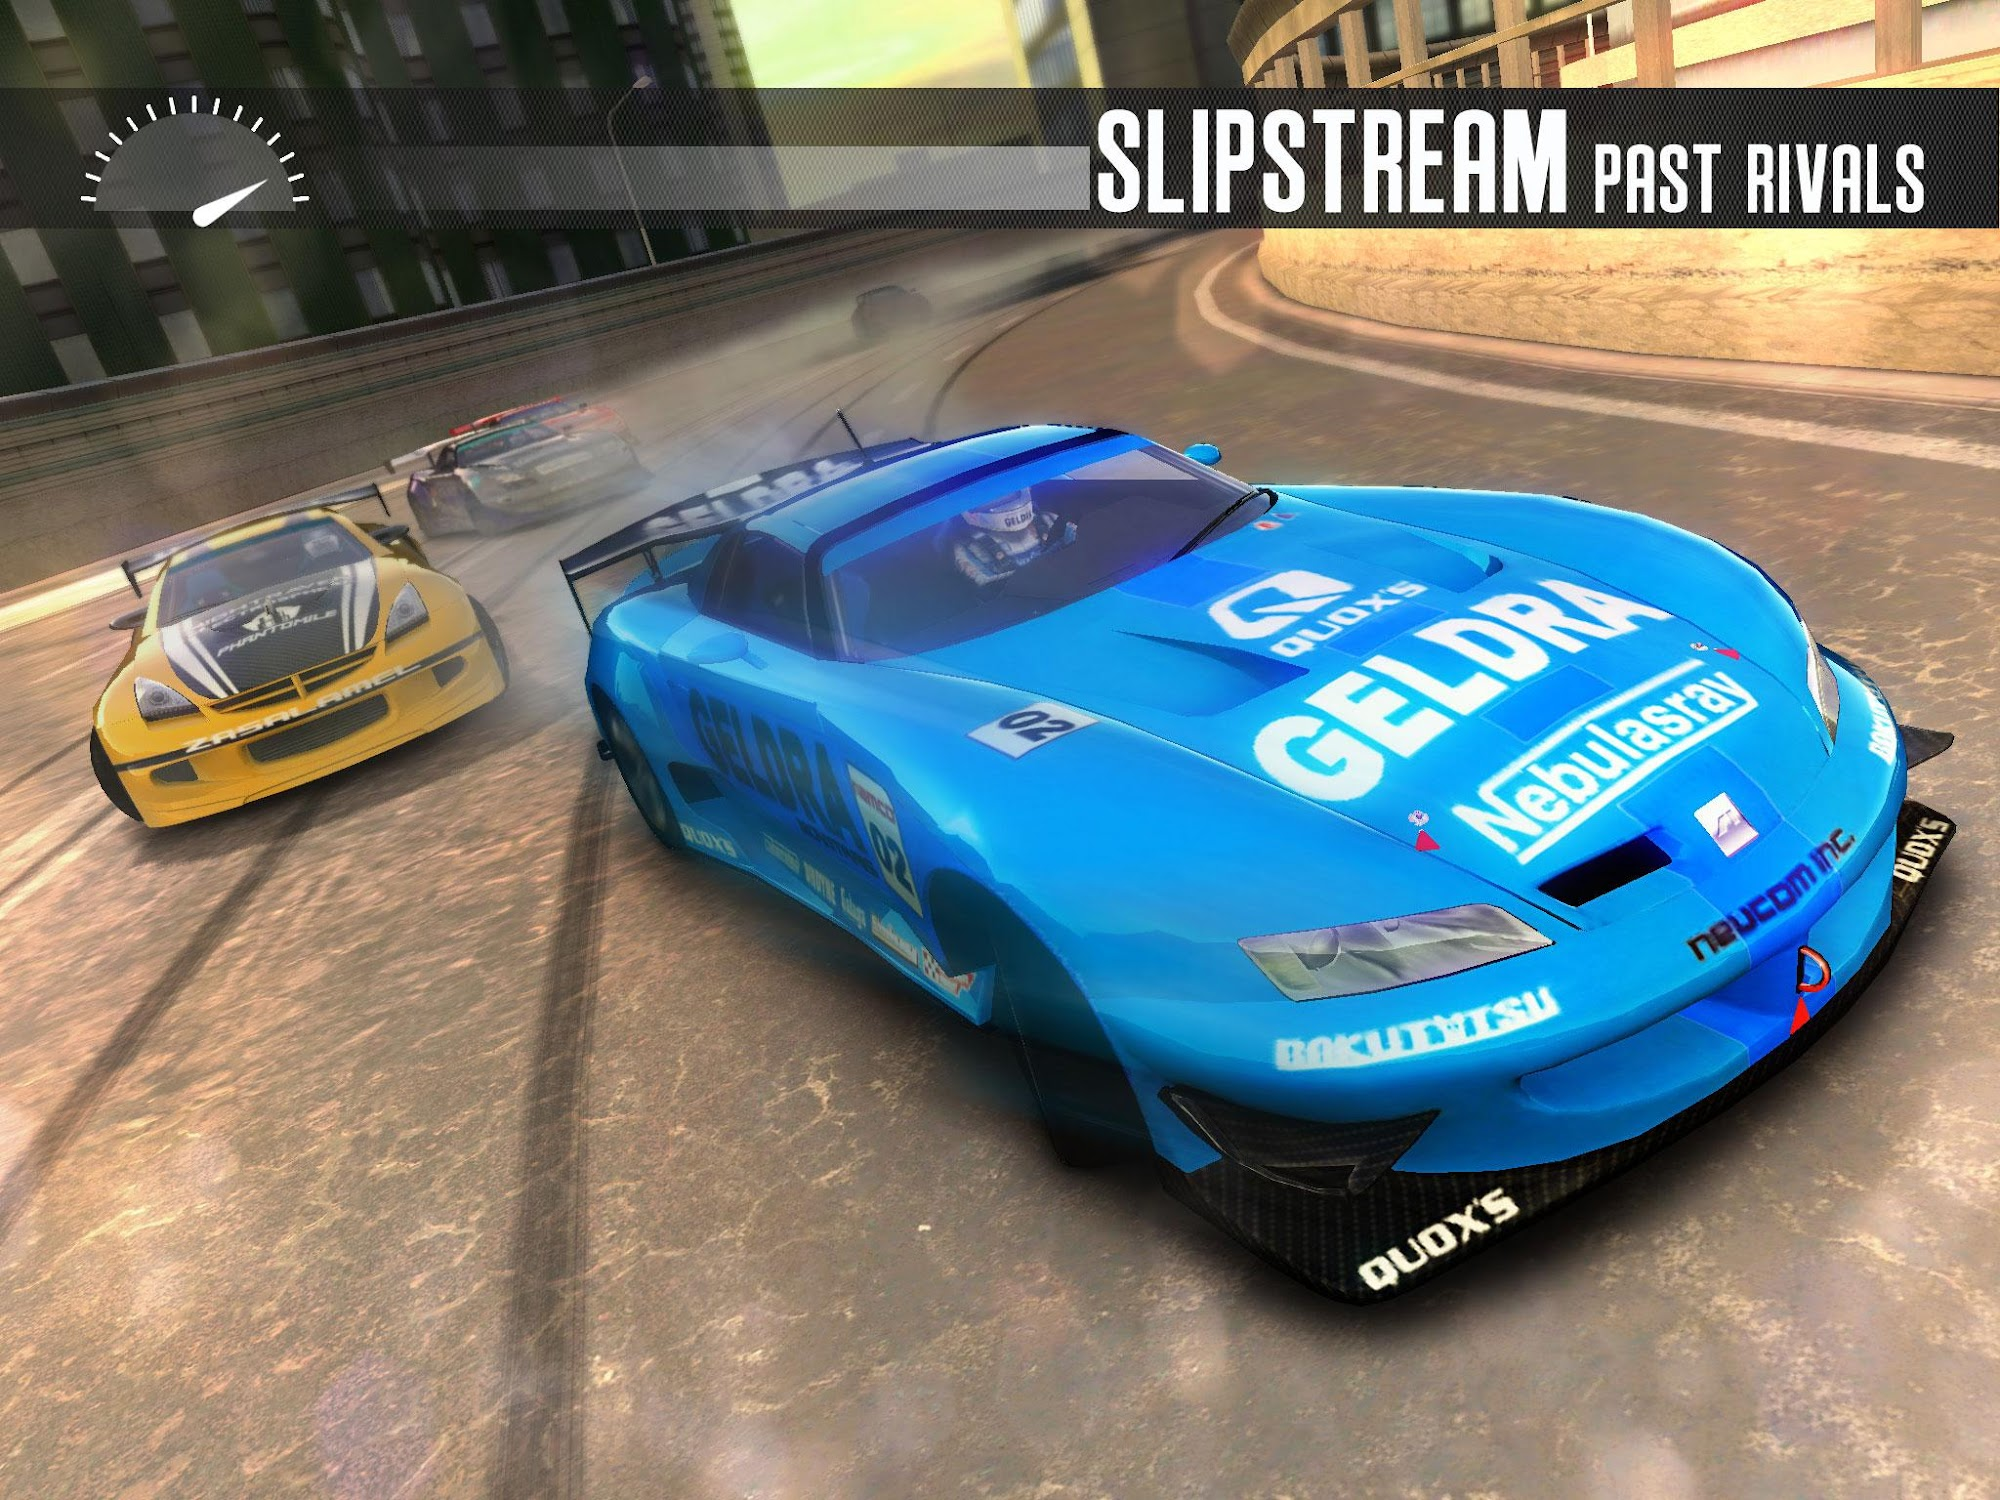 Ridge Racer Slipstream screenshot #2